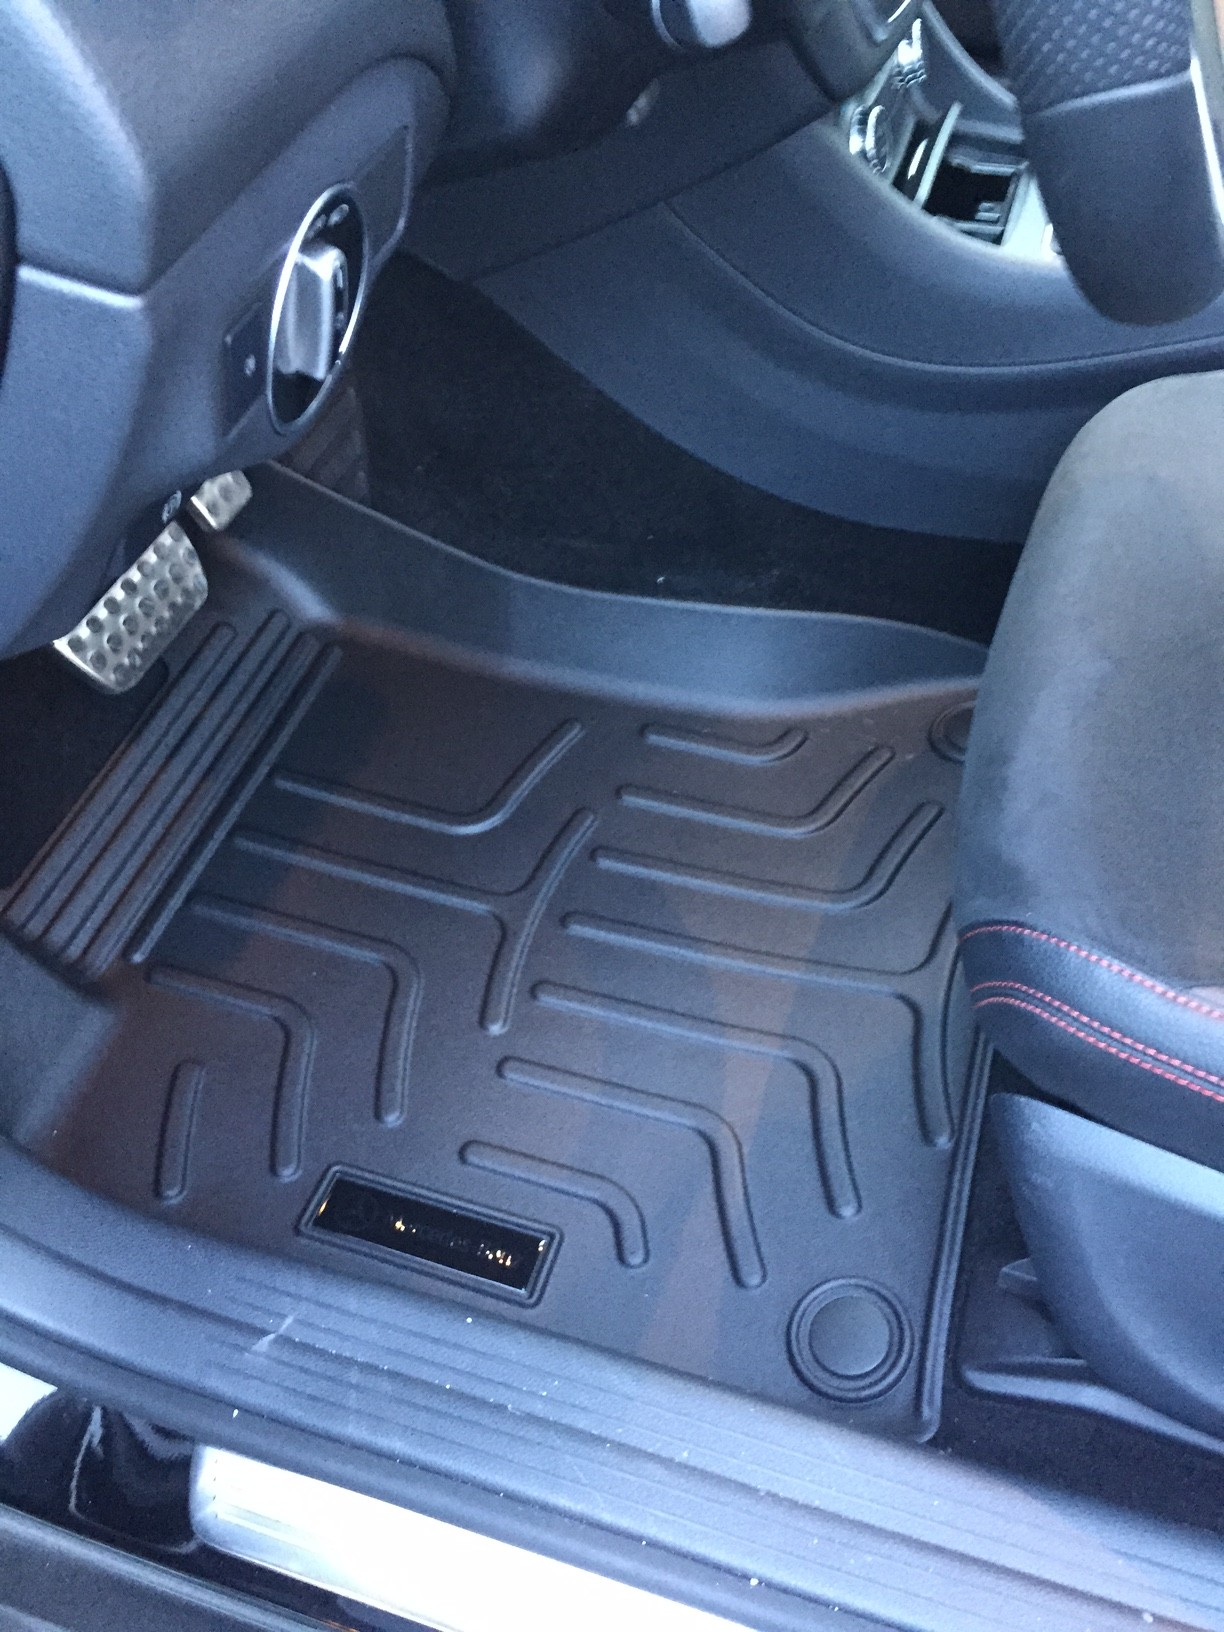 weathertech gray mpn mats sportage mat floor all weather car row kia